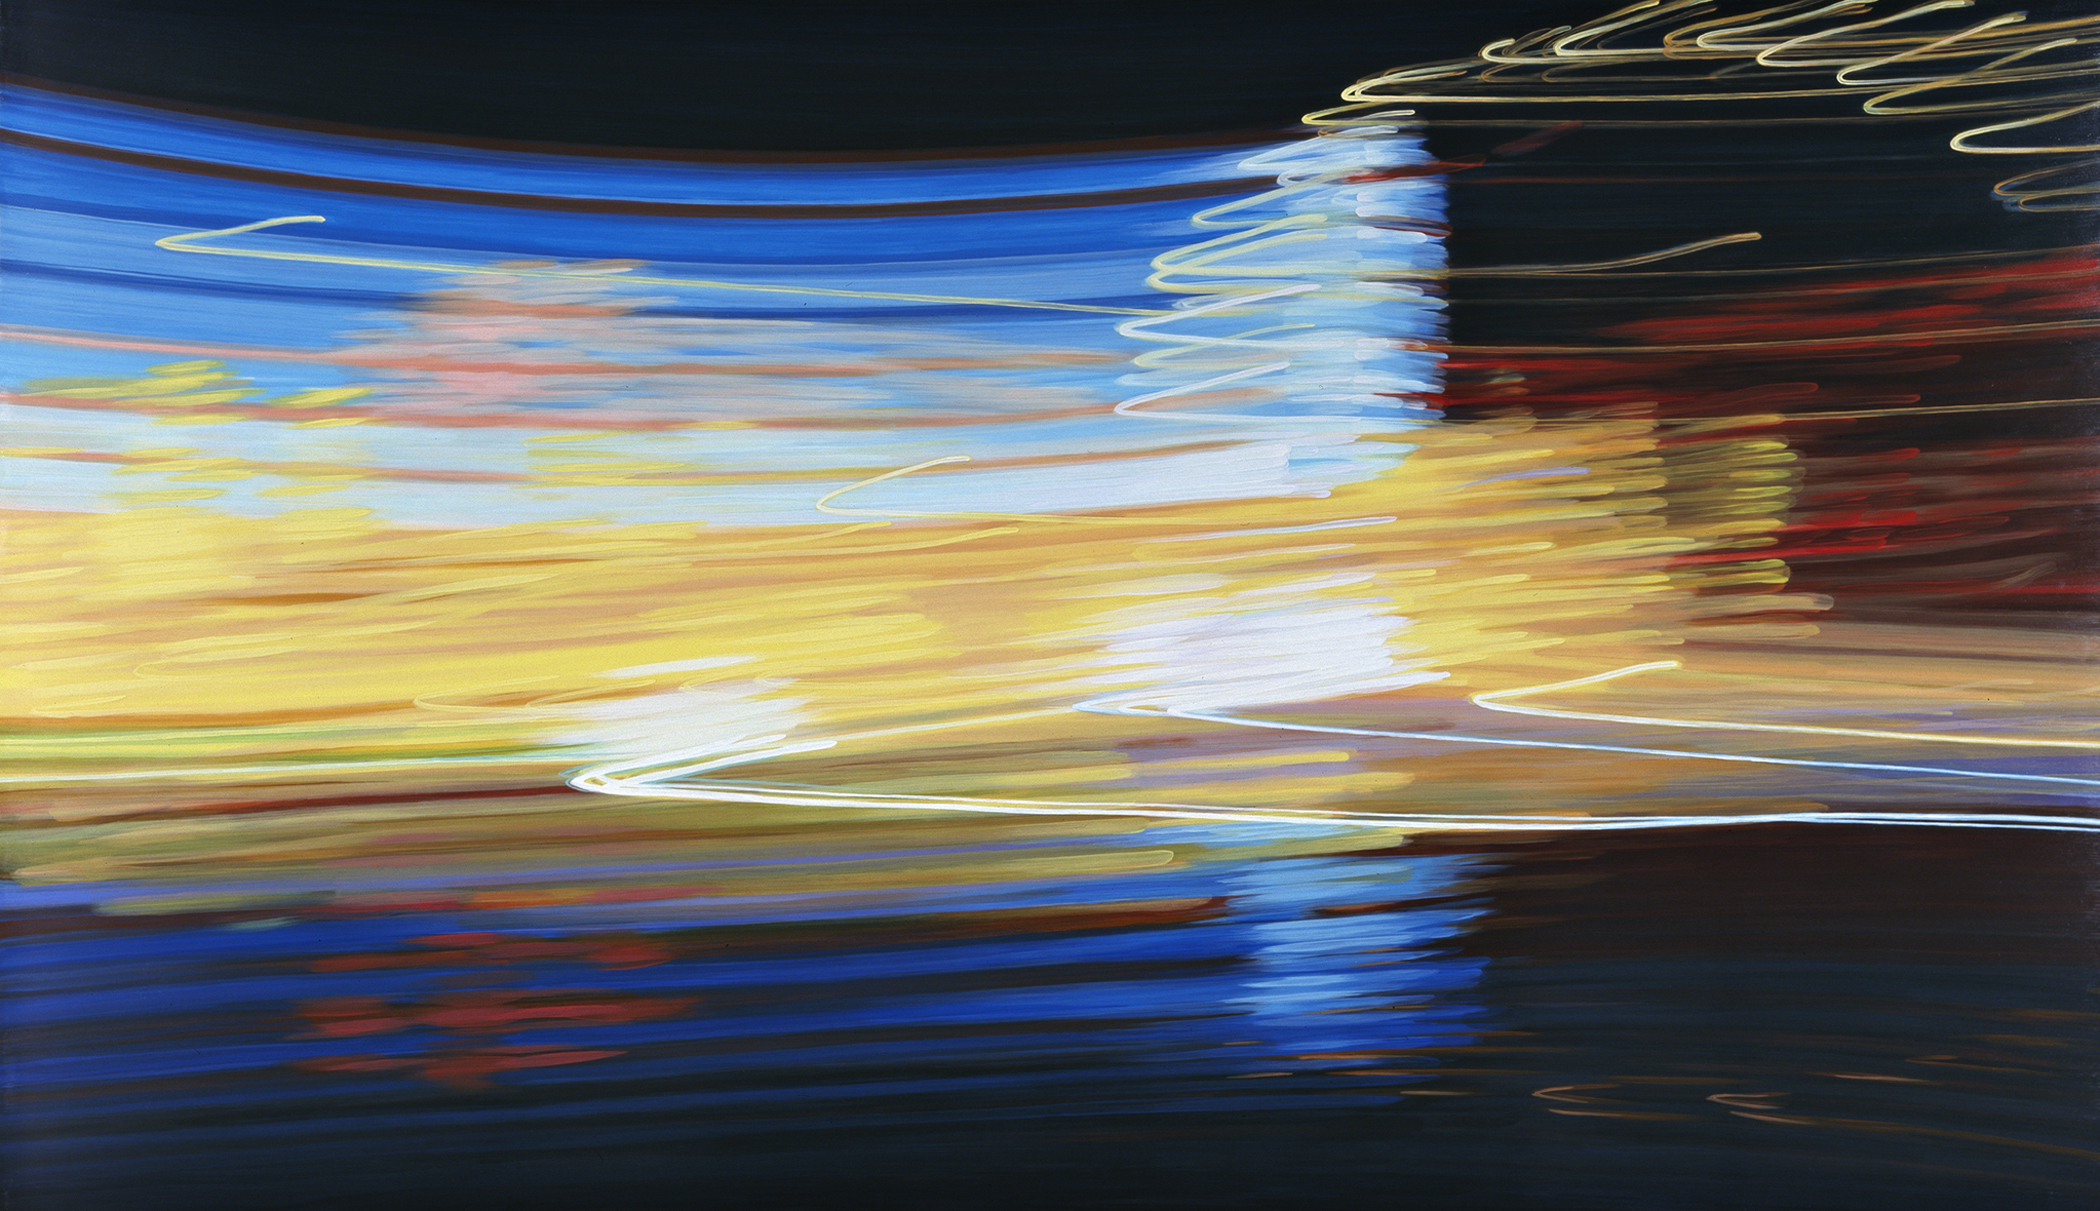 Midway VI 2009 acrylic on board 46x82in by Contemporary Canadian Artist Katharine Harvey